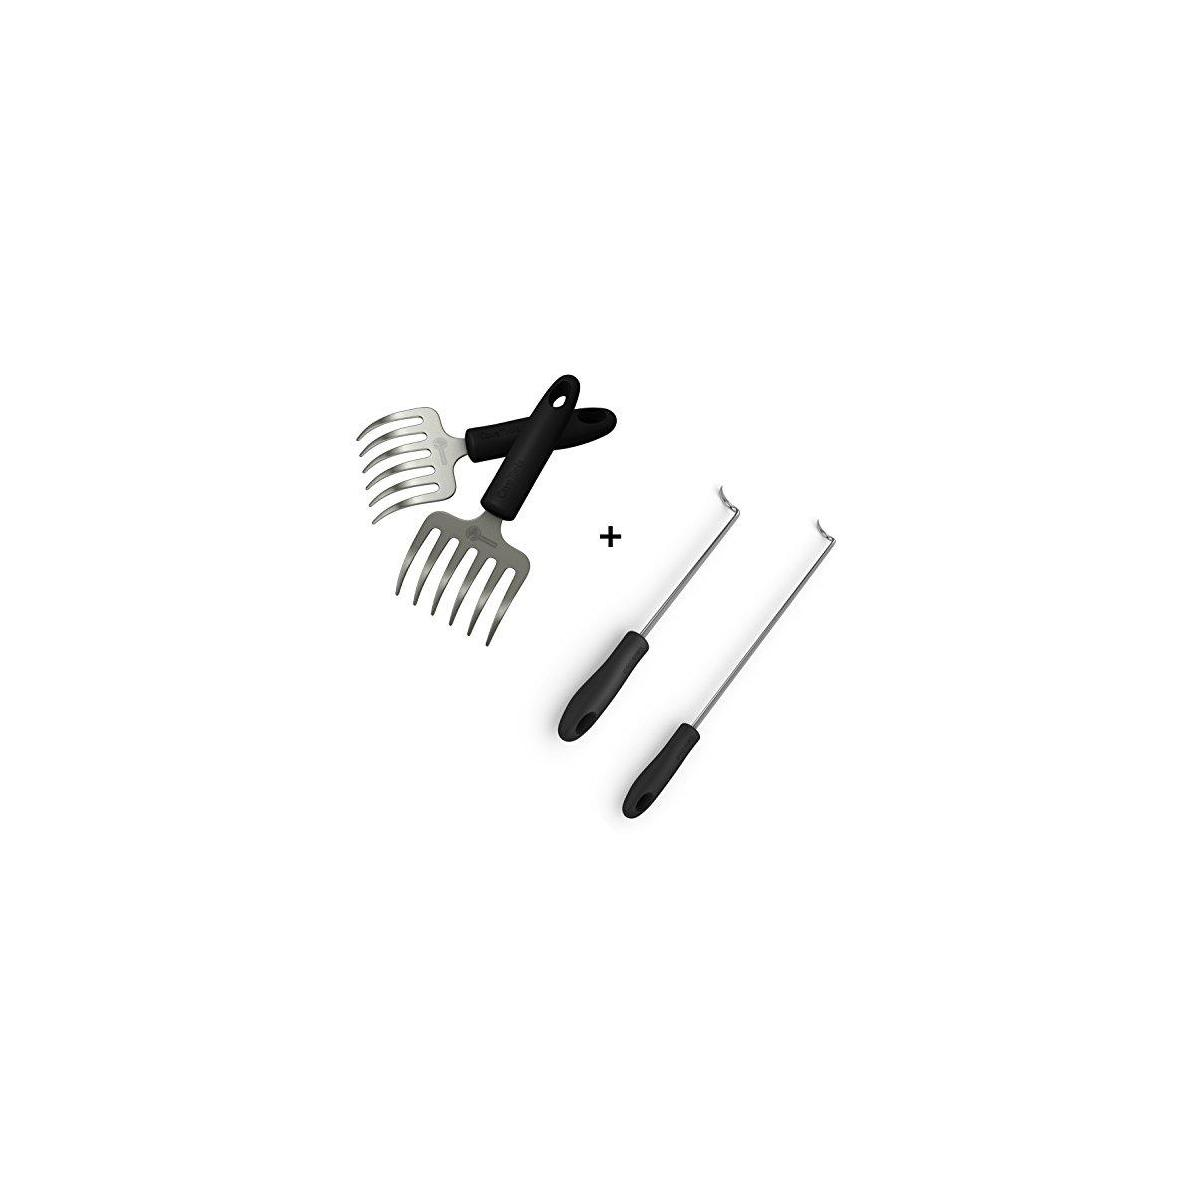 Pulled Pork Shredder Rakes + Pigtail Food Flipper Hooks - Large & Small Barbecue & Cooking Turners For Turning Bacon Steak Meat Vegetables Sausage Fish - Replaces Grill Spatula Tongs & BBQ Fork